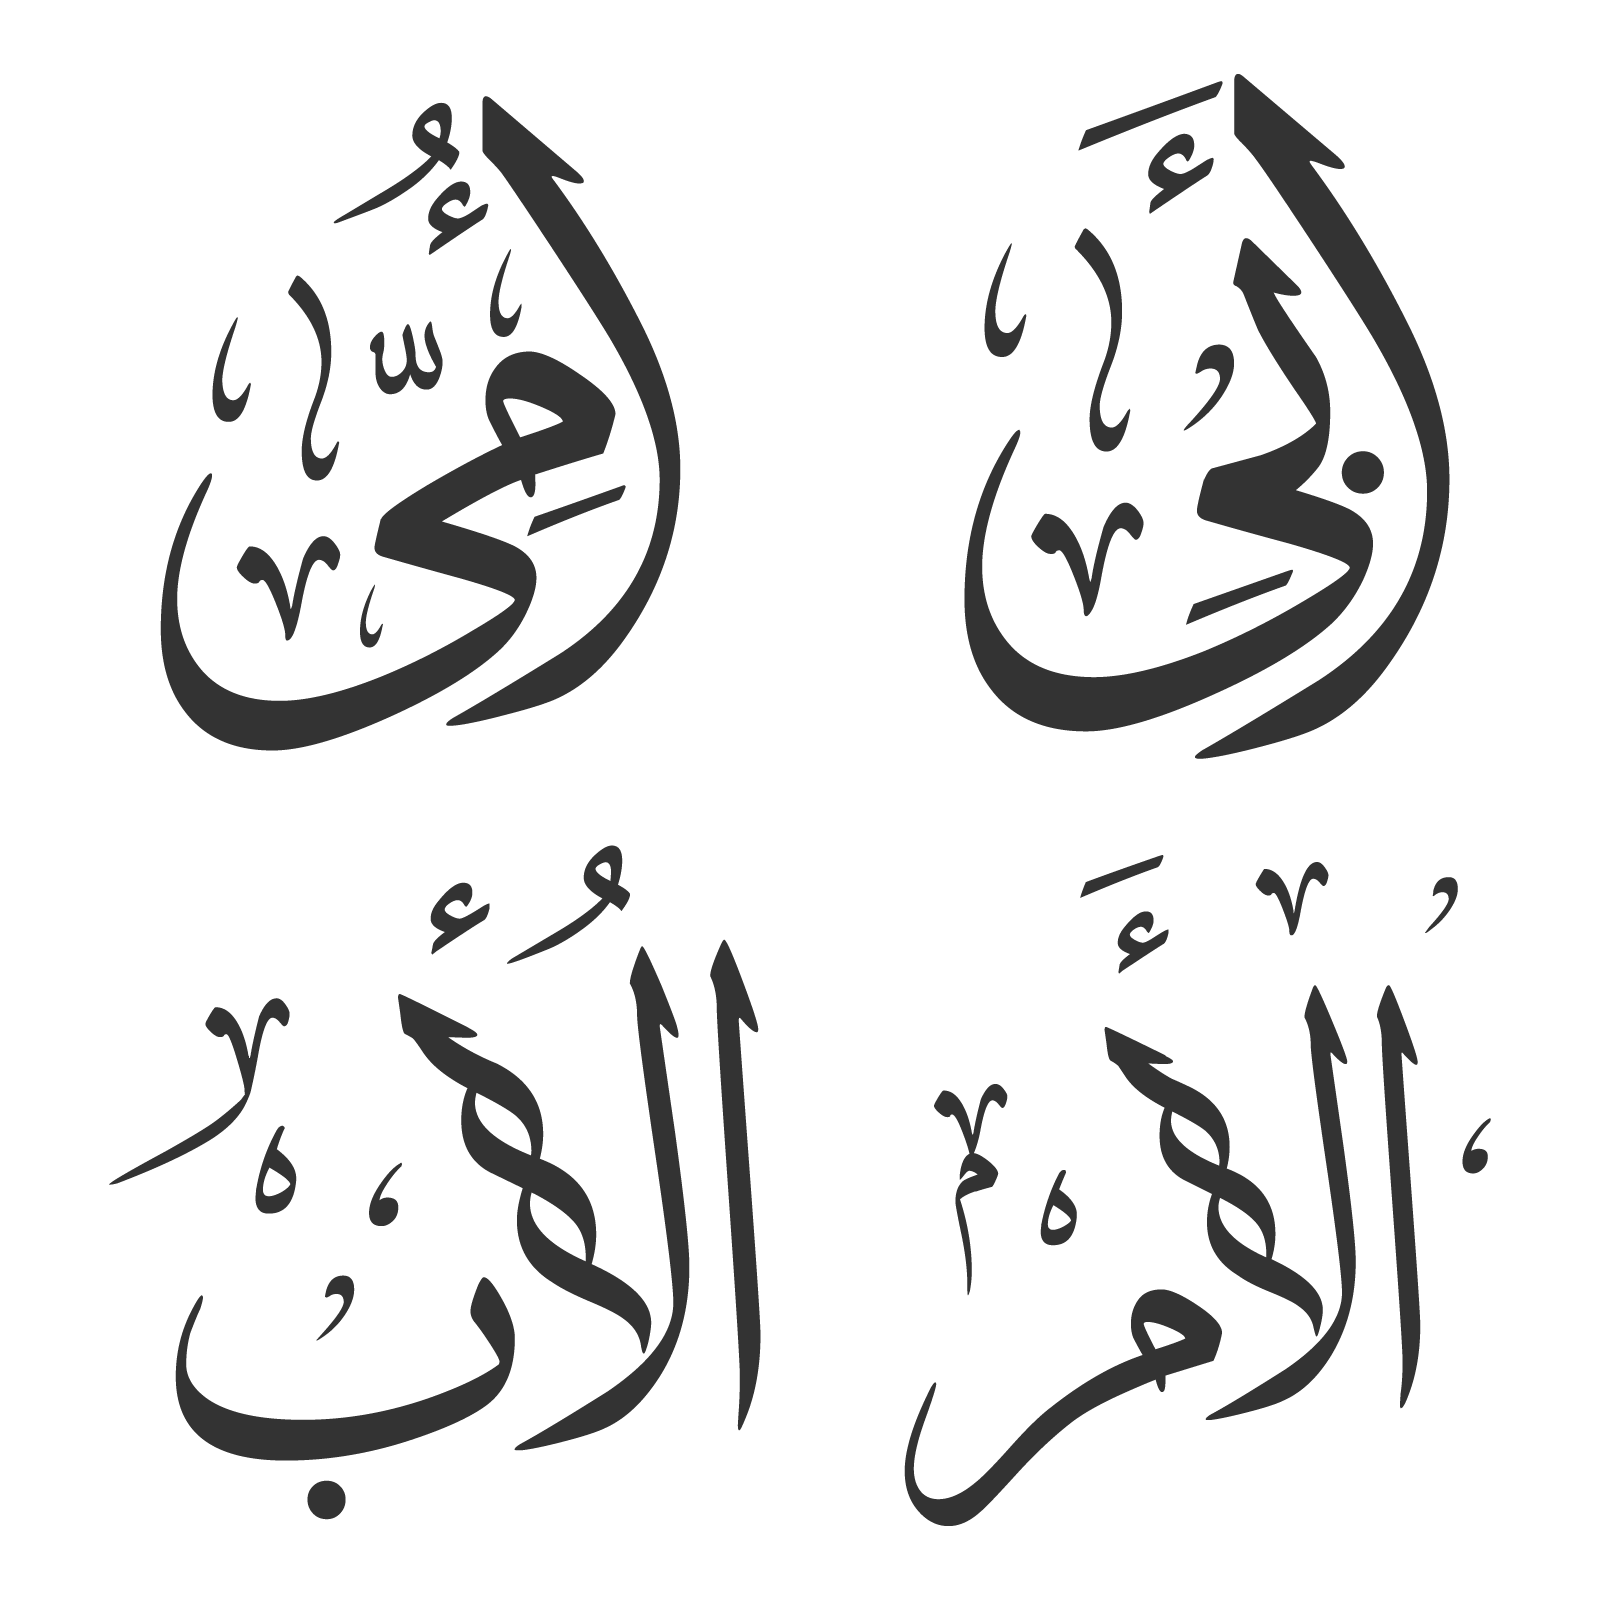 Ummi Wa Abi  scripts vector svg eps psd ai pdf png download free #Ummi #Abi #arab #arabic #islam #vectors #fonts #vector #svg #eps